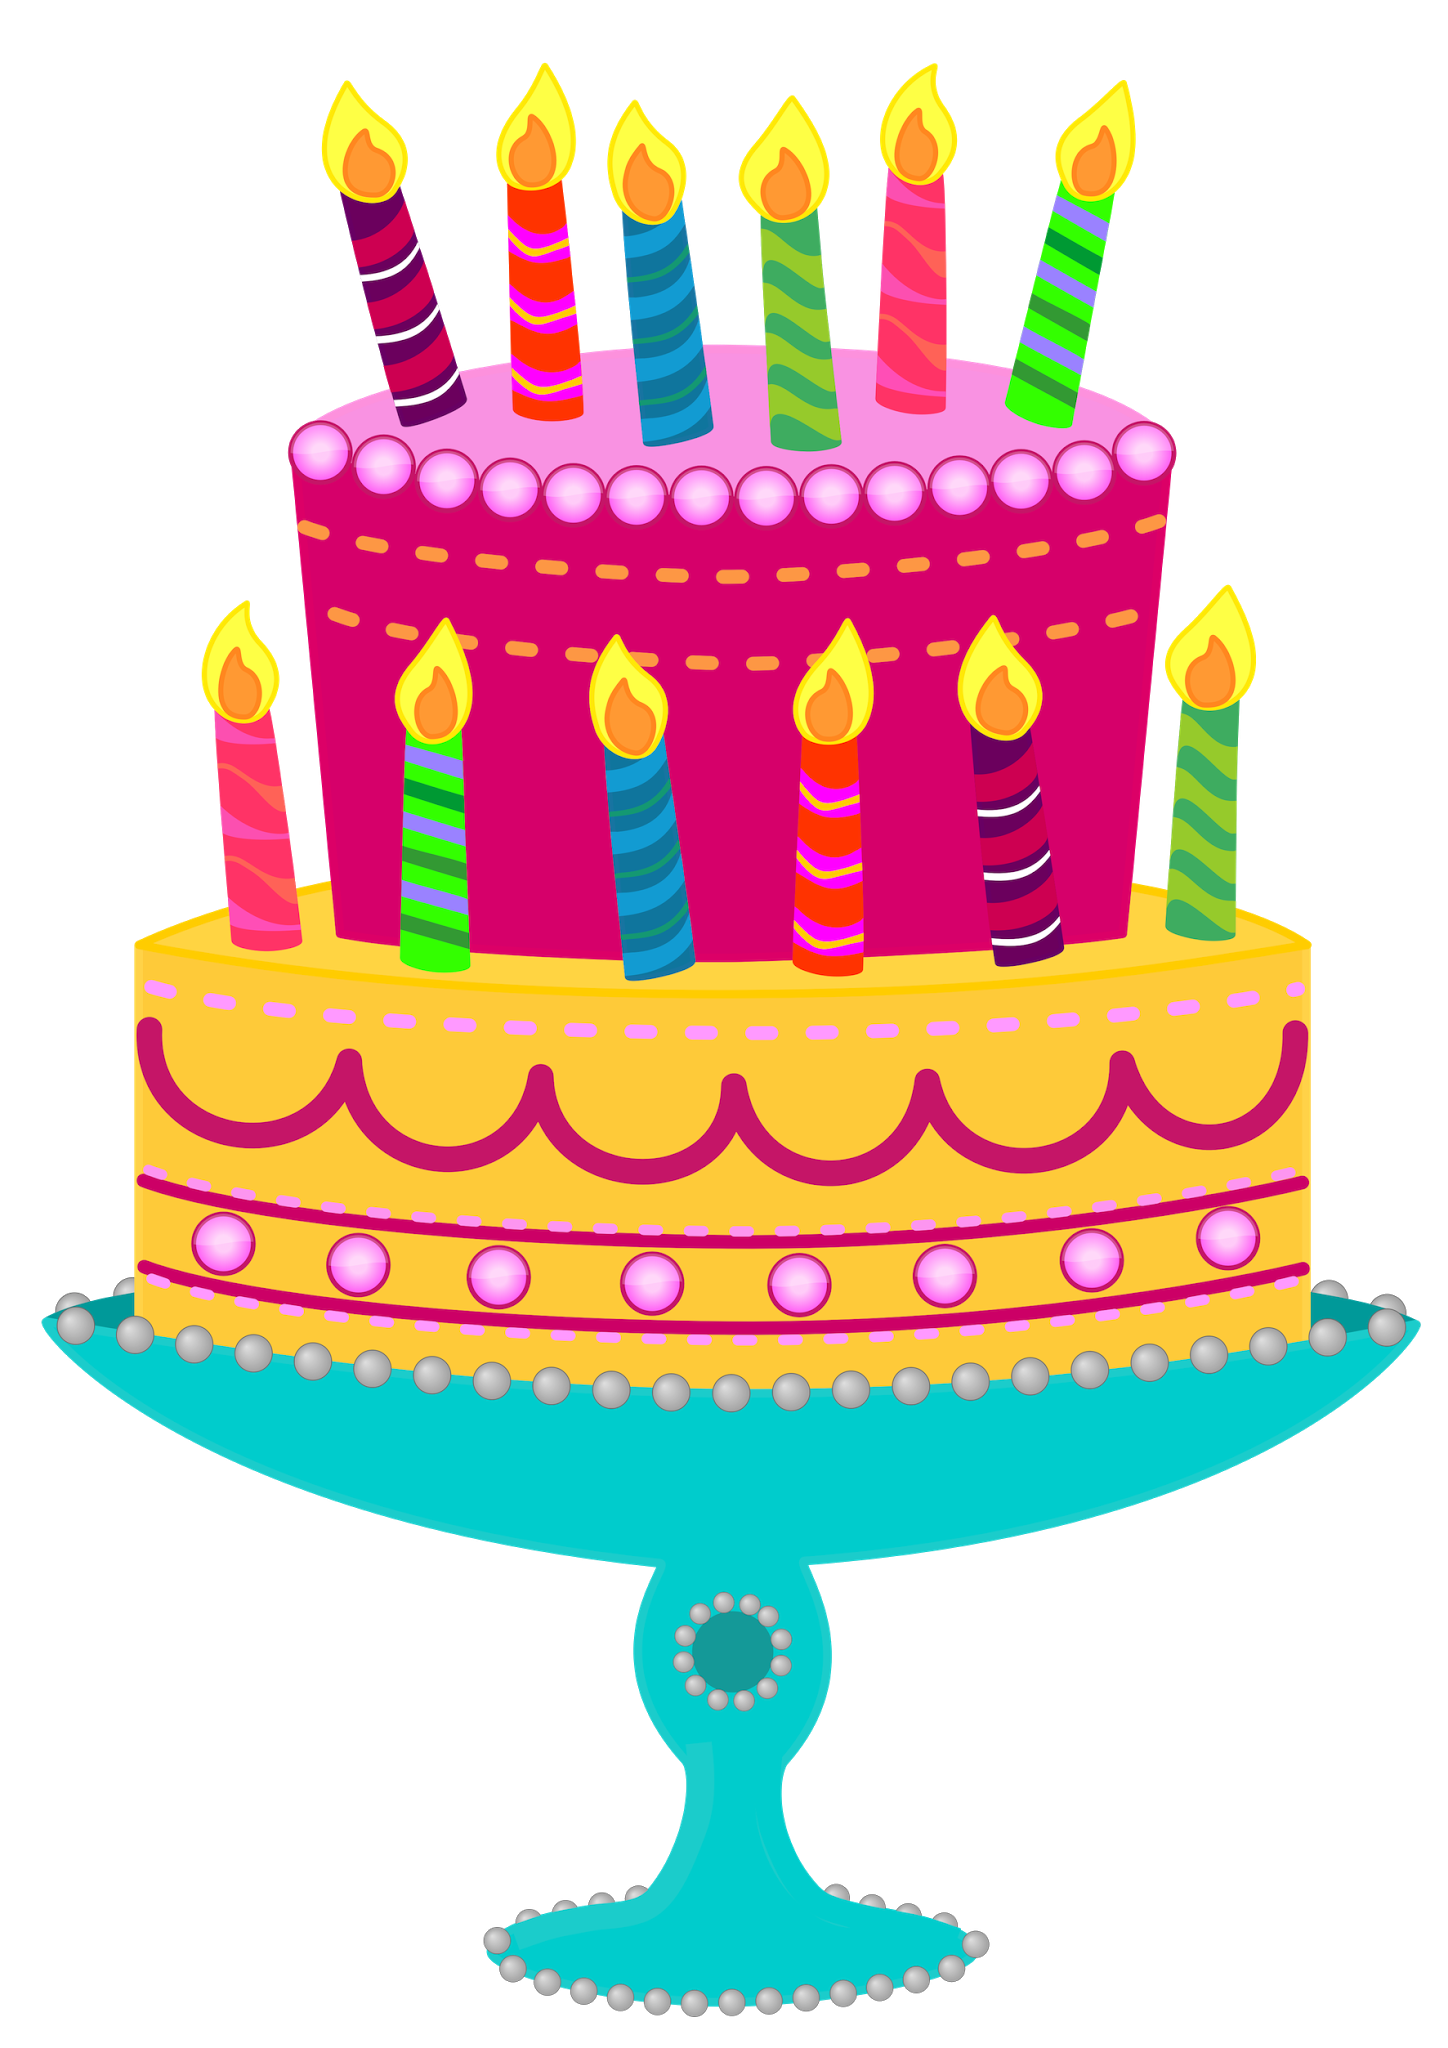 Free images cliparts co. Clipart of birthday cake